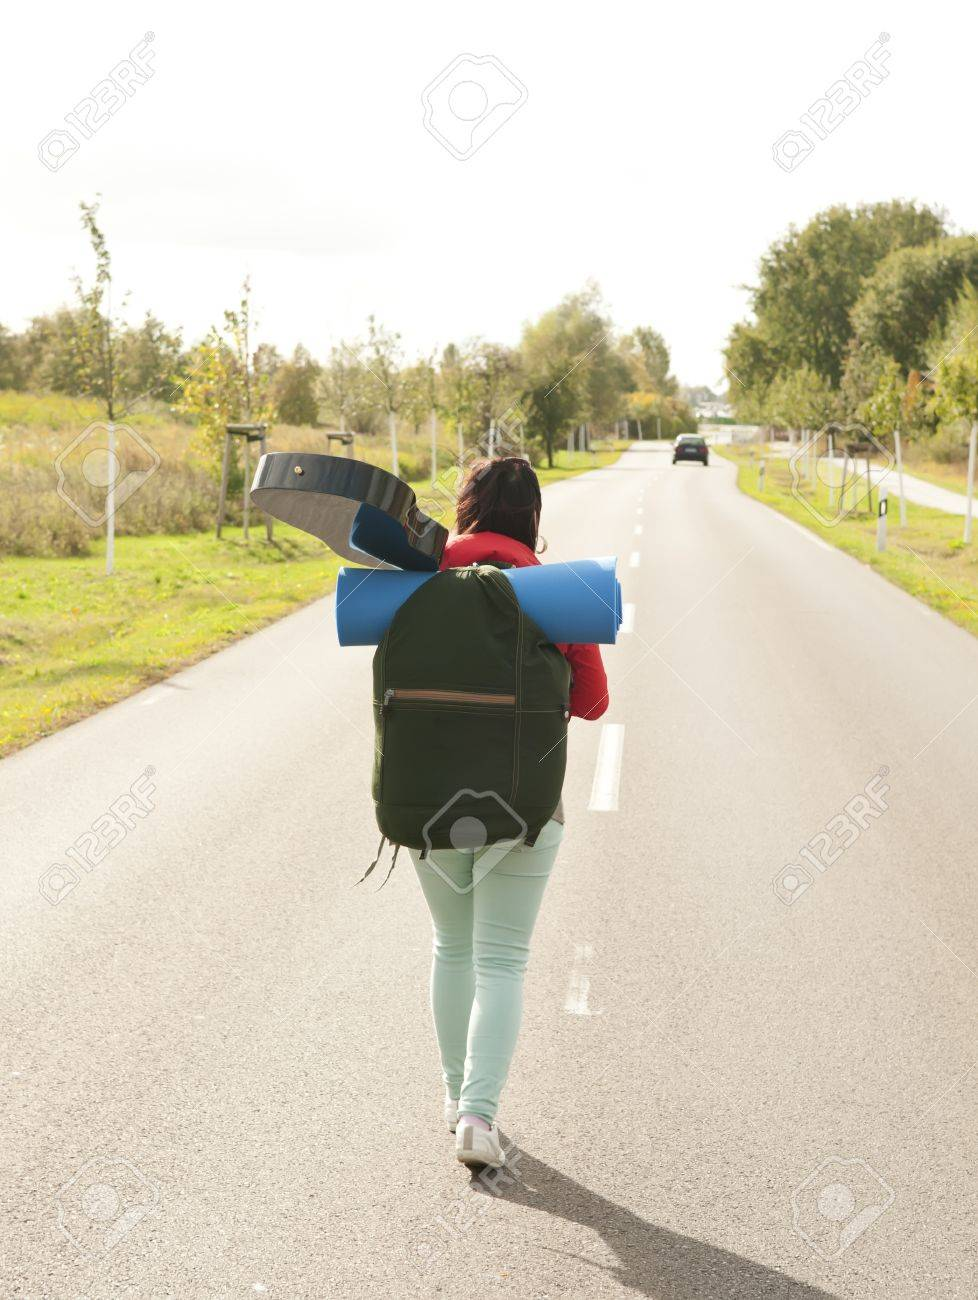 hitchhiker with guitar on the road, rear view Stock Photo - 15782034